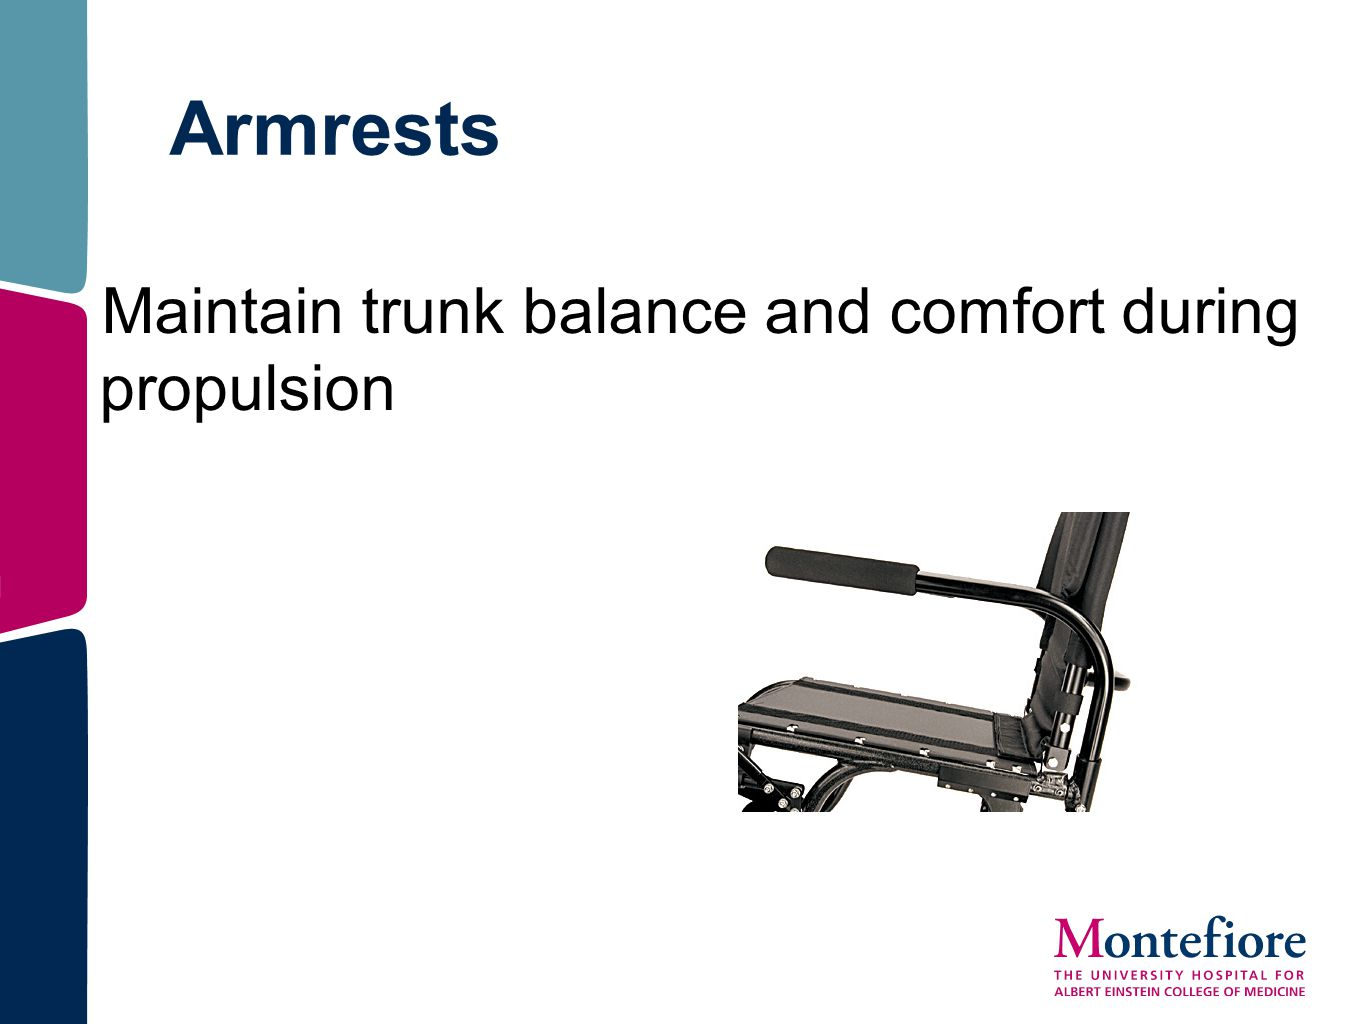 Armrests Maintain trunk balance and comfort during propulsion